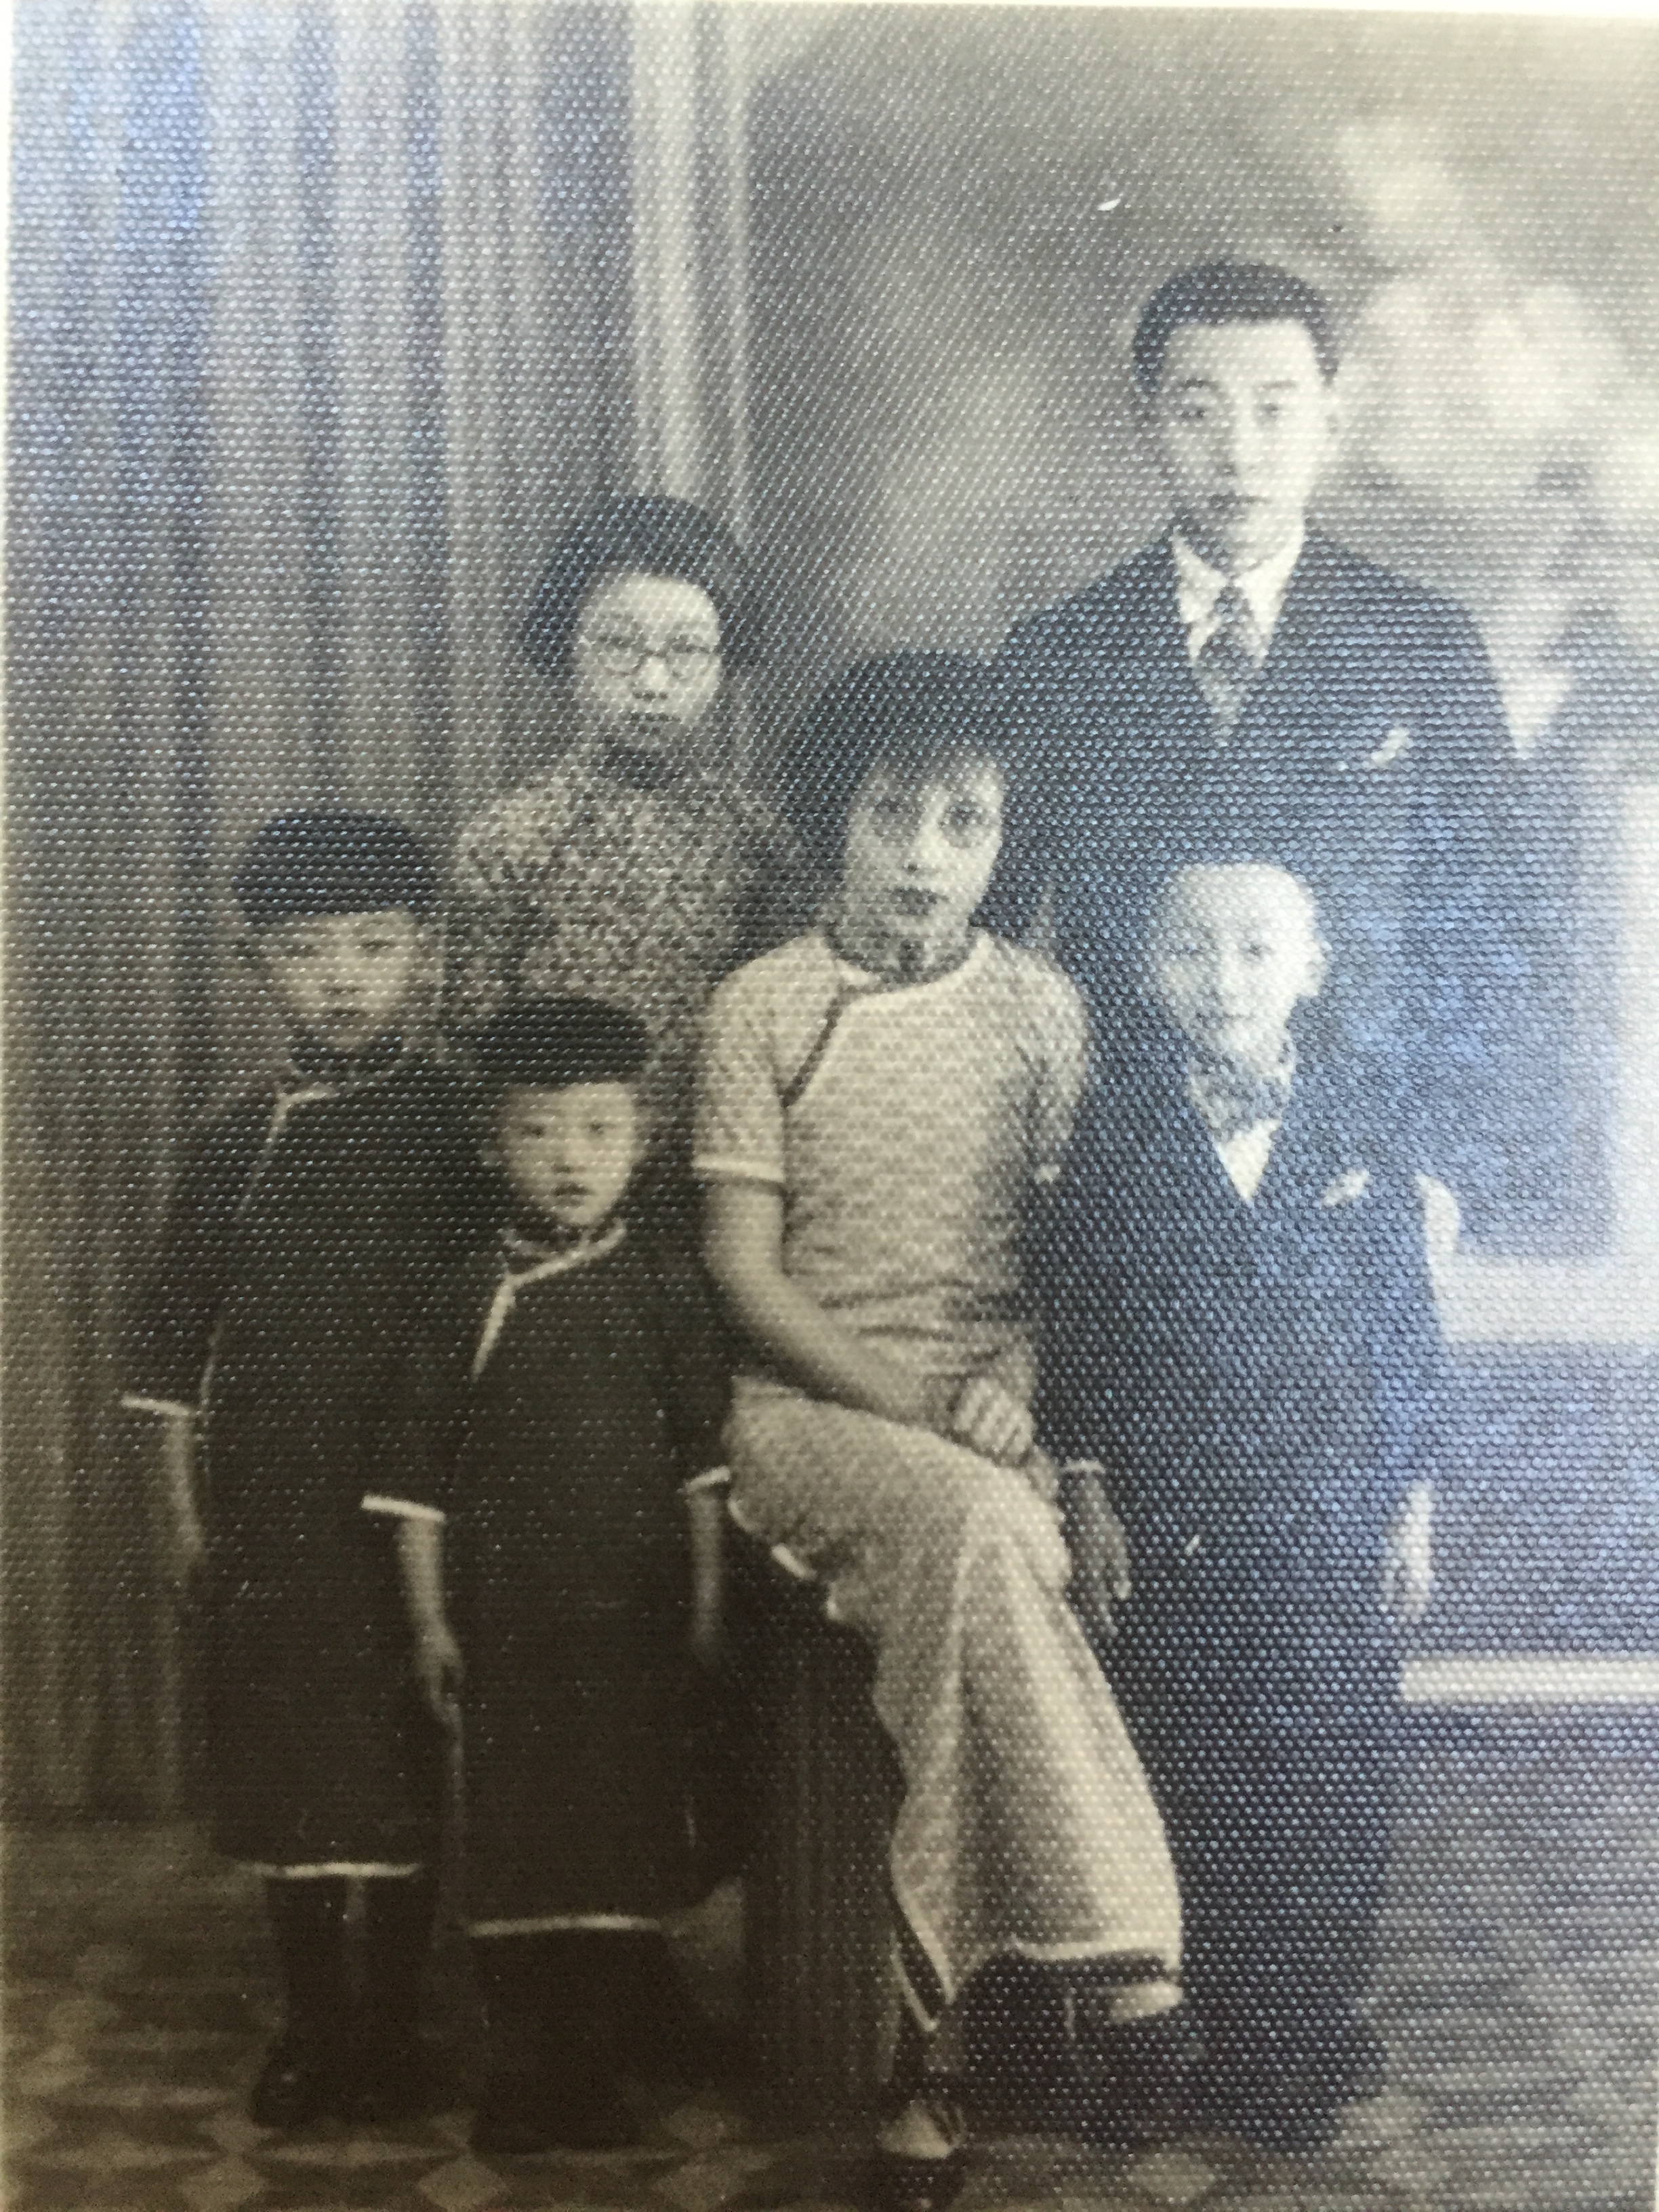 Kuan family in China. Image courtesy Ami Kuan Danoff